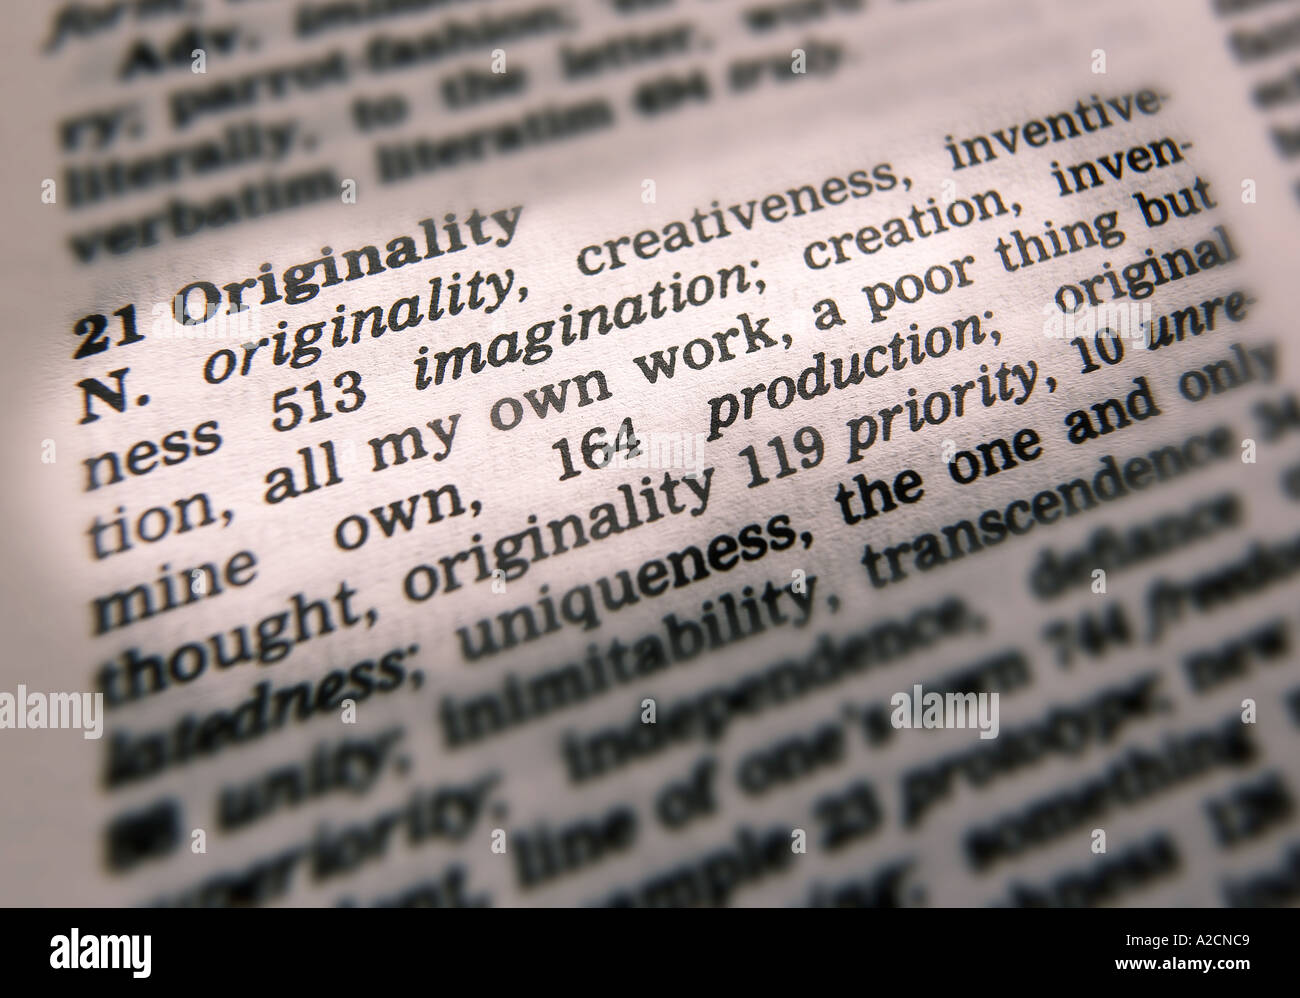 THESAURUS PAGE SHOWING DEFINITION OF WORD ORIGINALITY Stock Photo